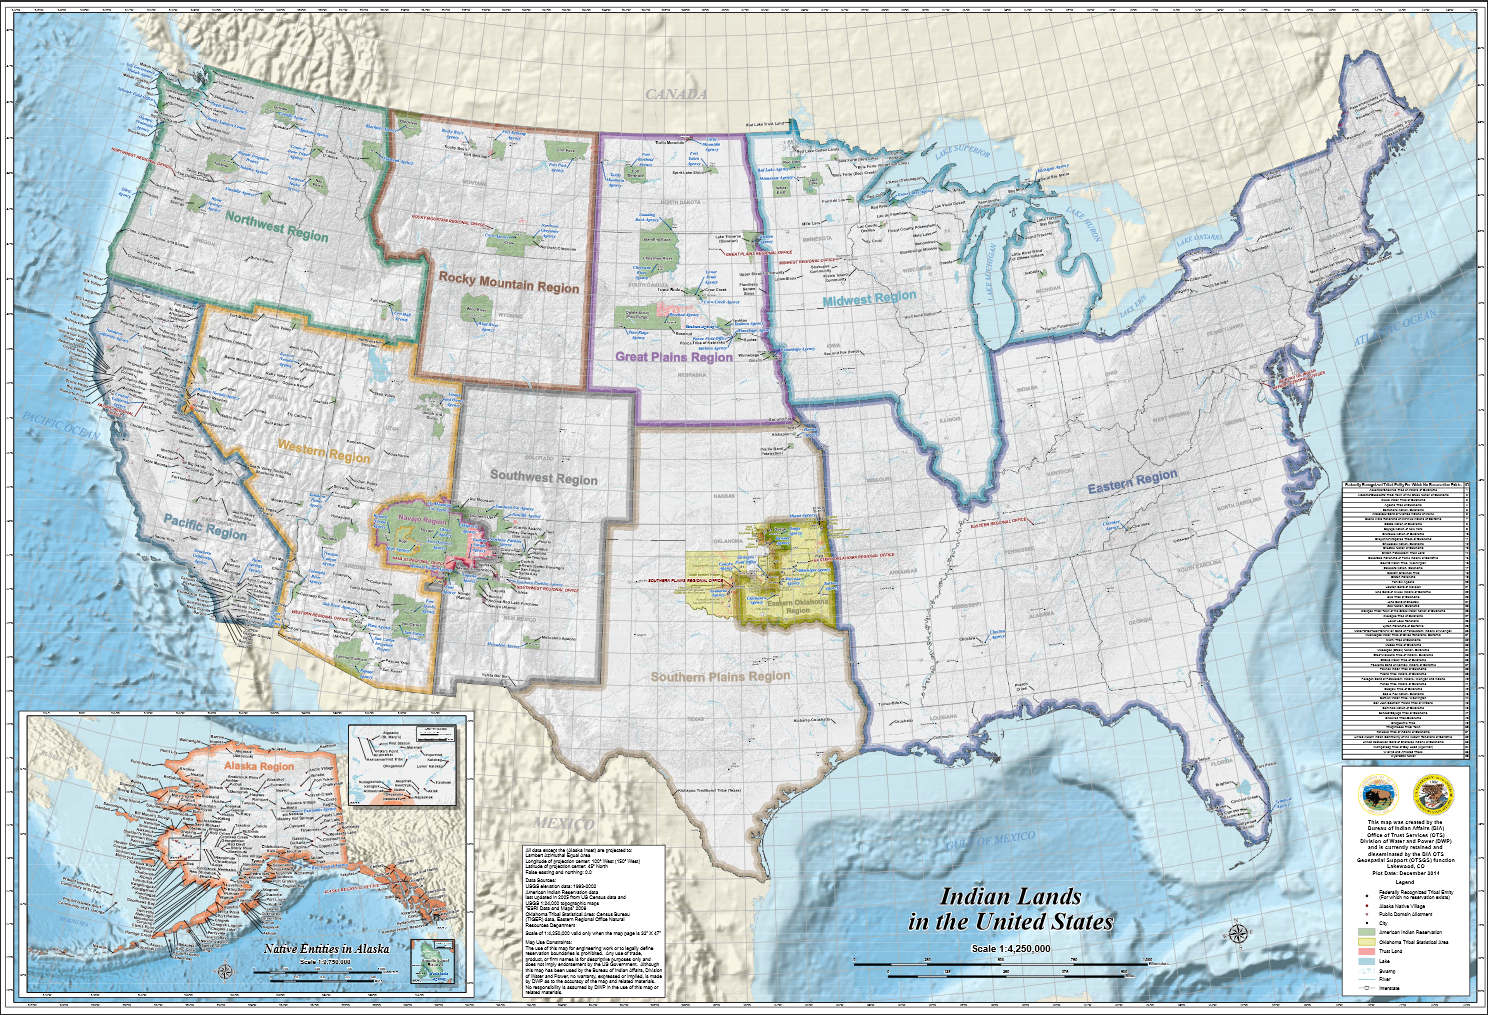 Tribal Nations Map Tribal Nations Maps   Data.gov